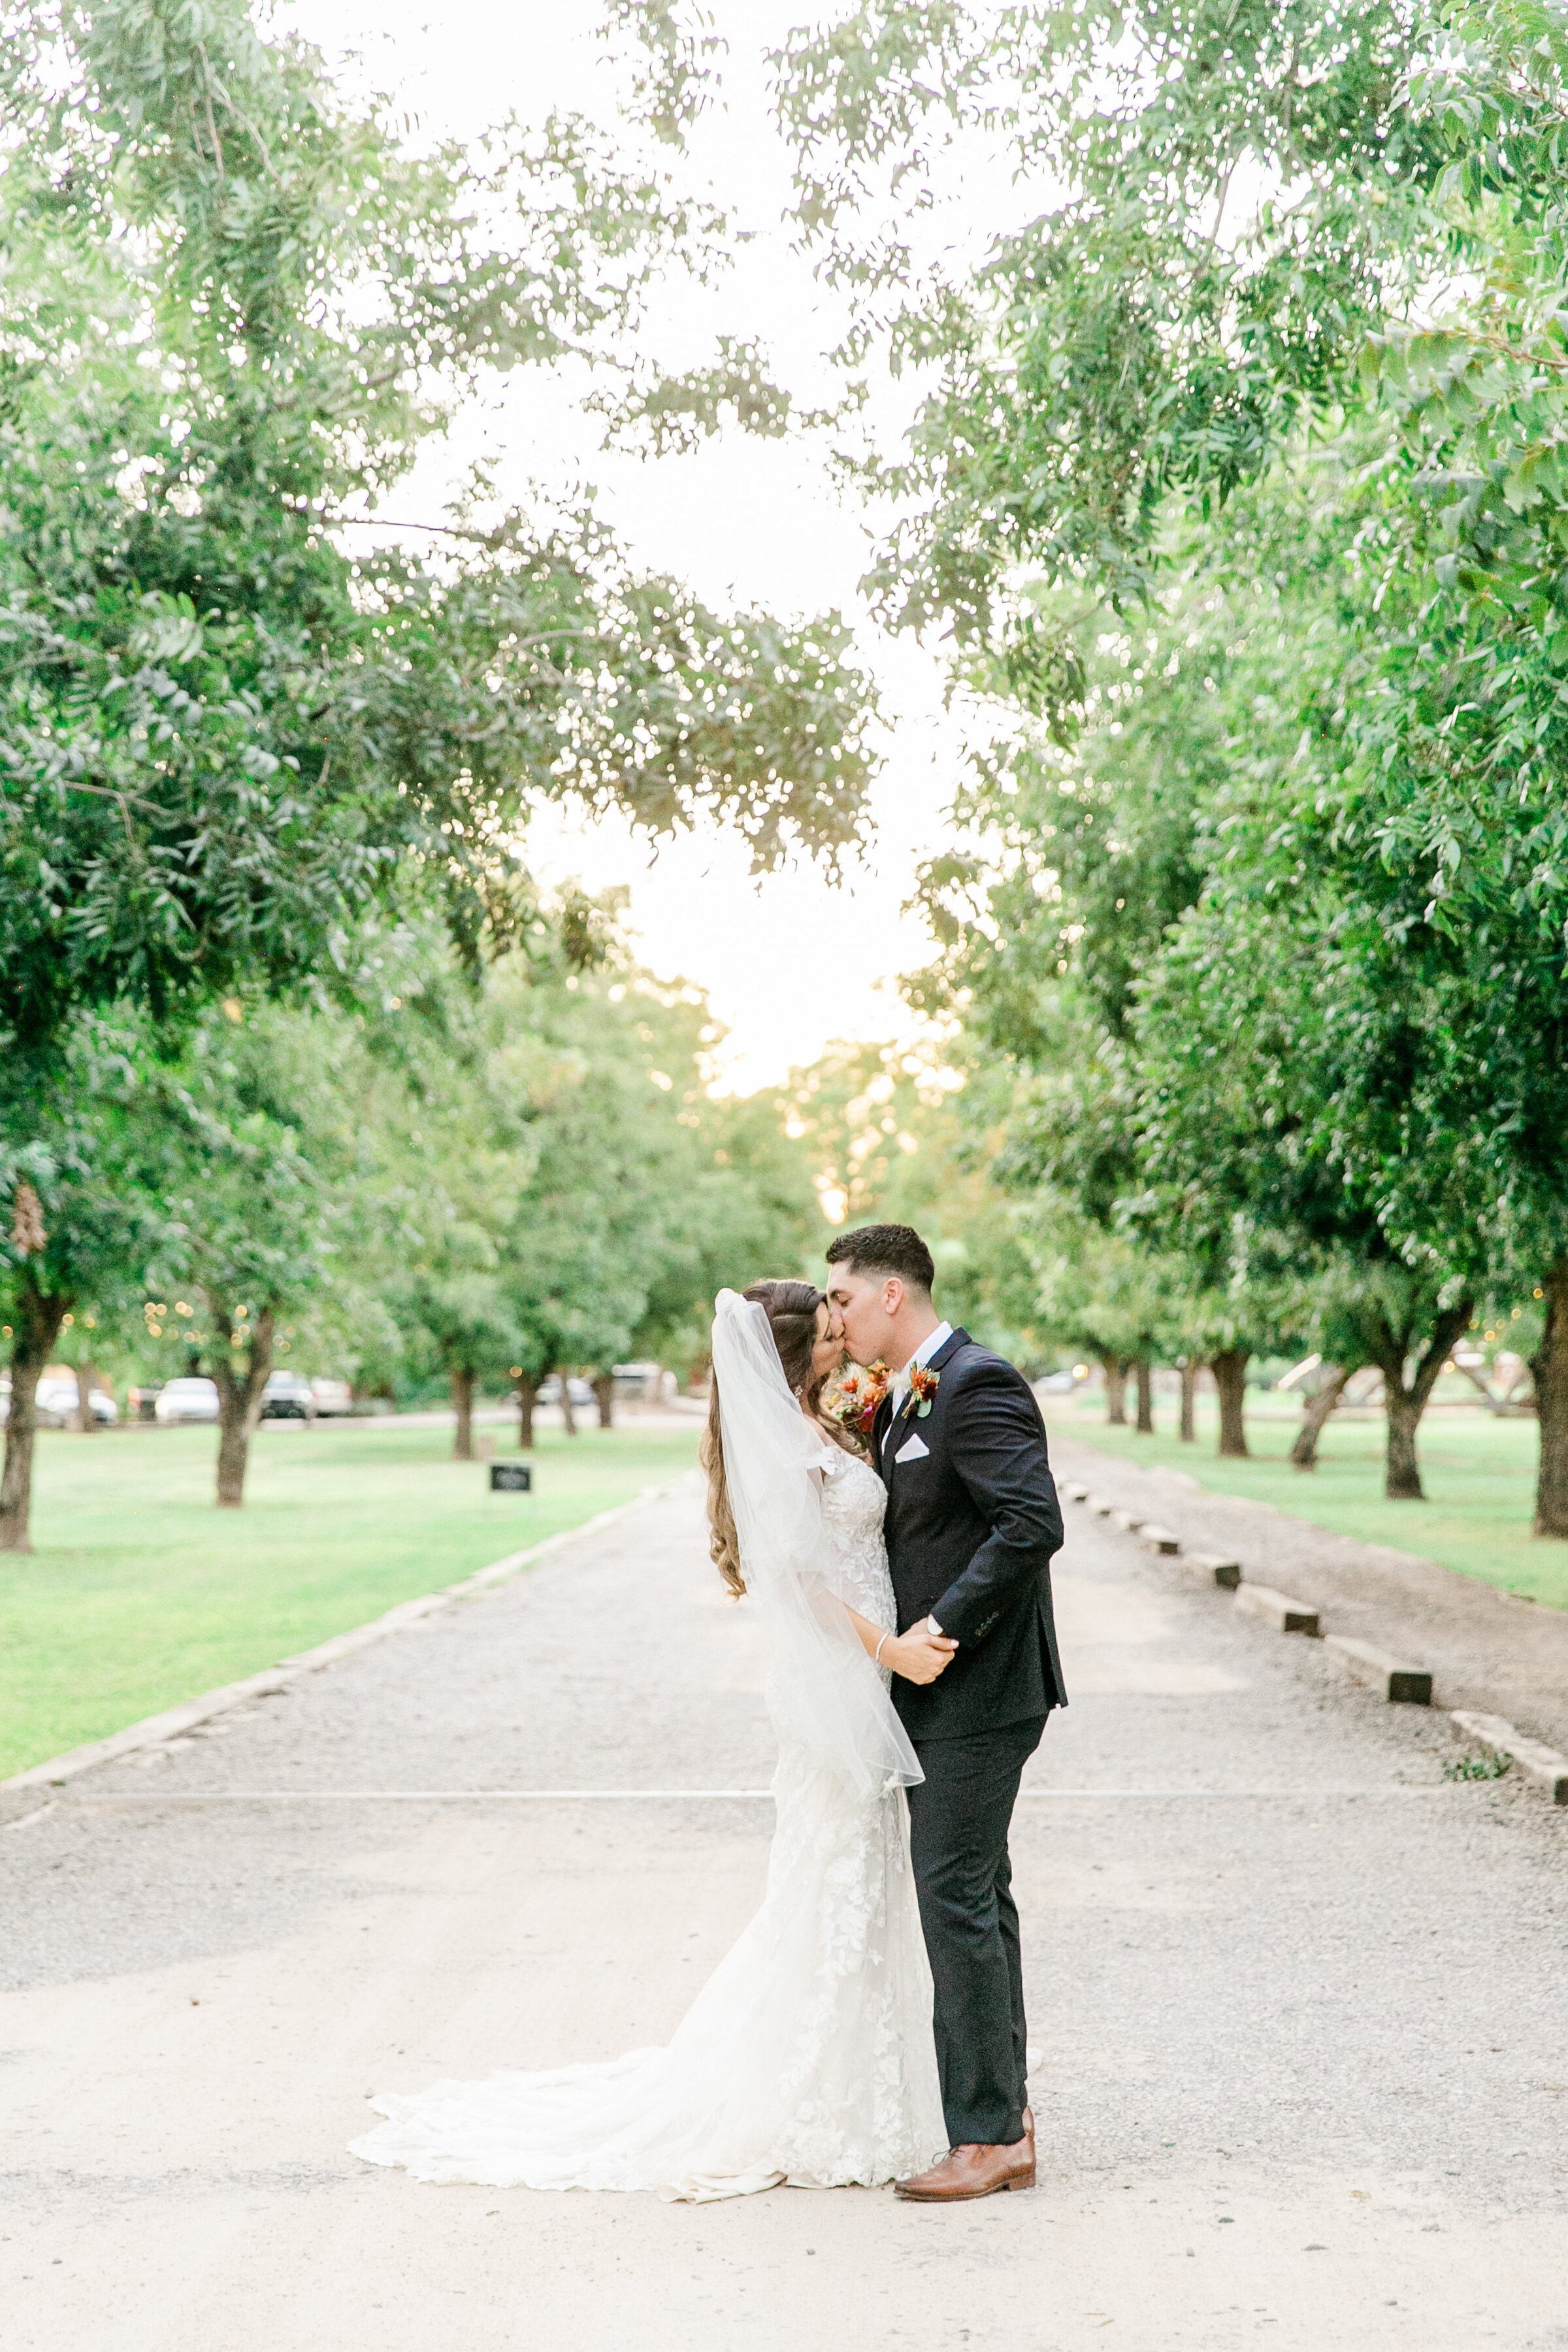 Karlie Colleen Photography - Phoenix Arizona - Farm At South Mountain Venue - Vanessa & Robert-710